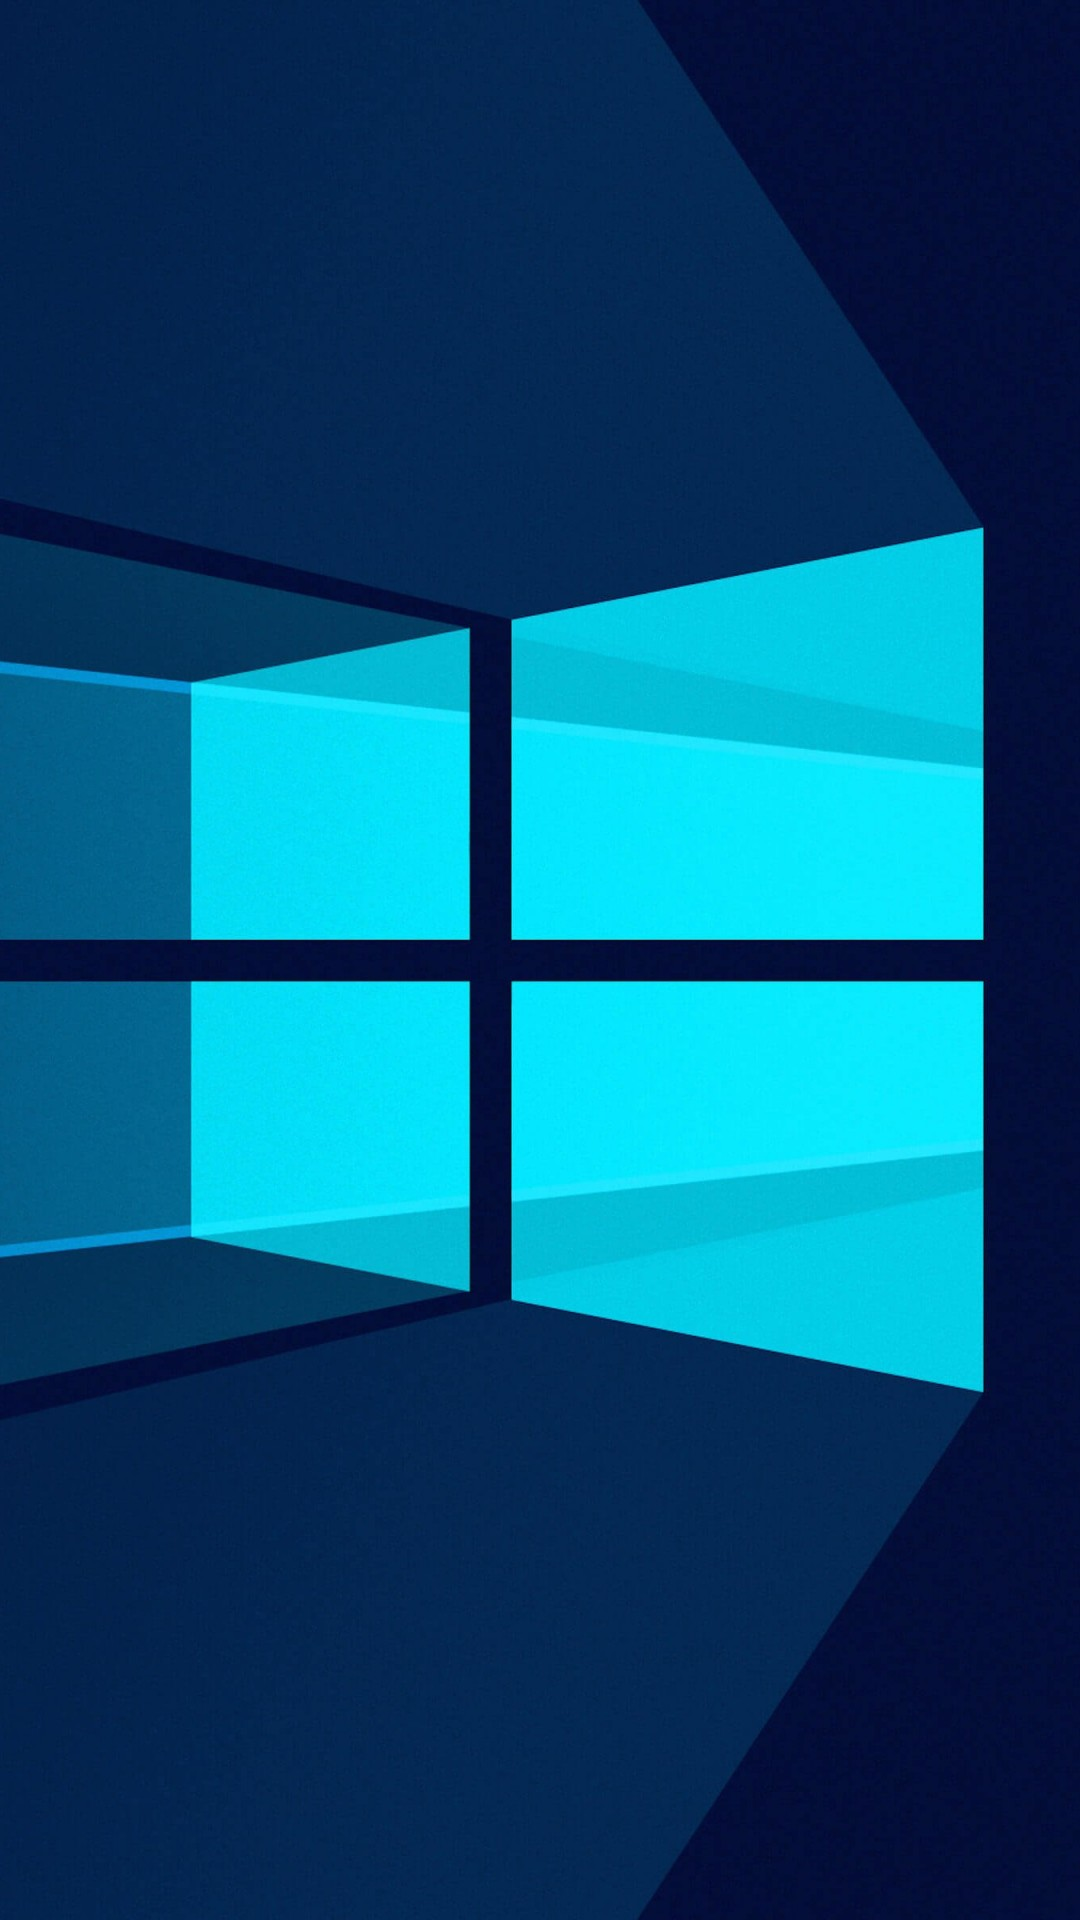 Windows 10 Flat Wallpaper for HTC One